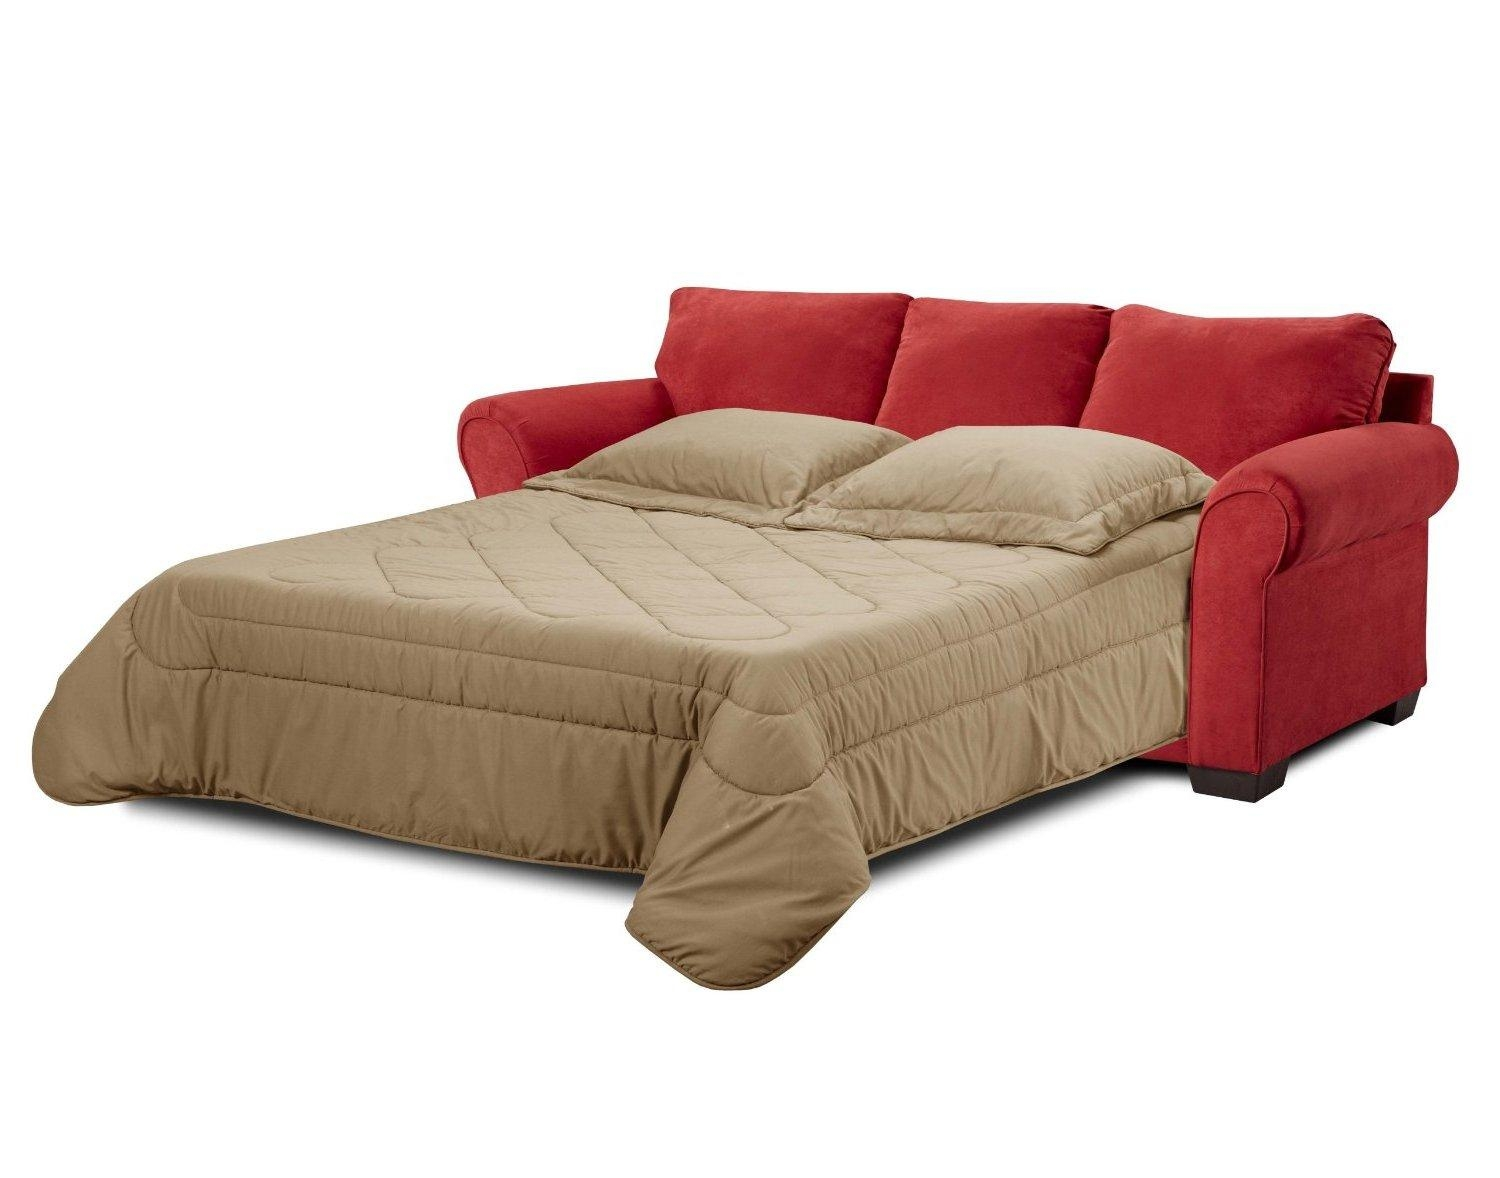 abc sofa bed fatboy simmons review home co